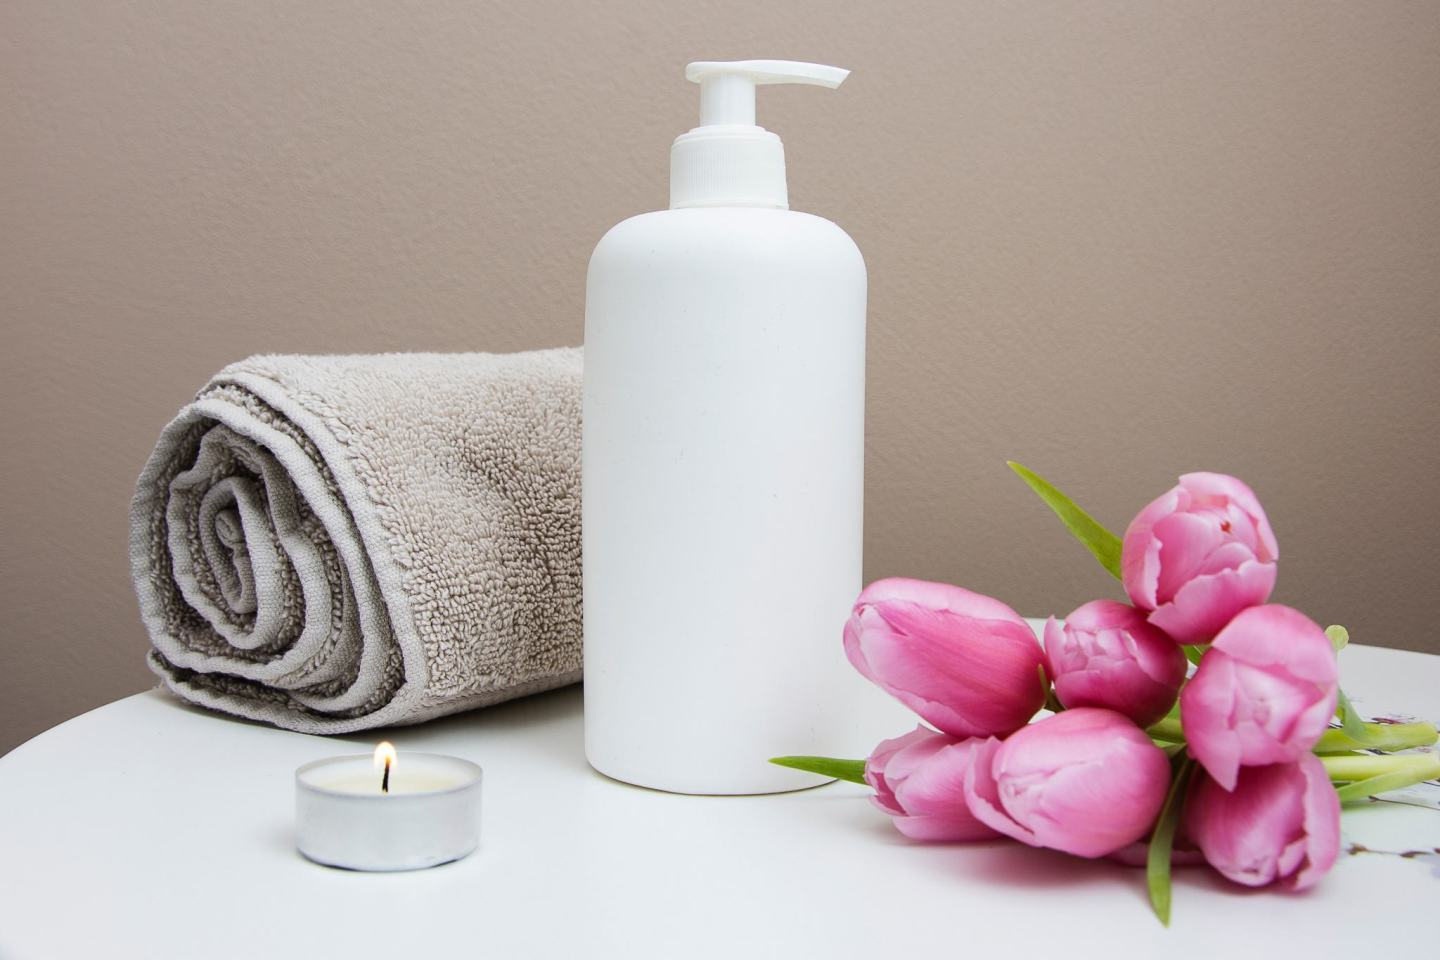 Items at a Spa for massages